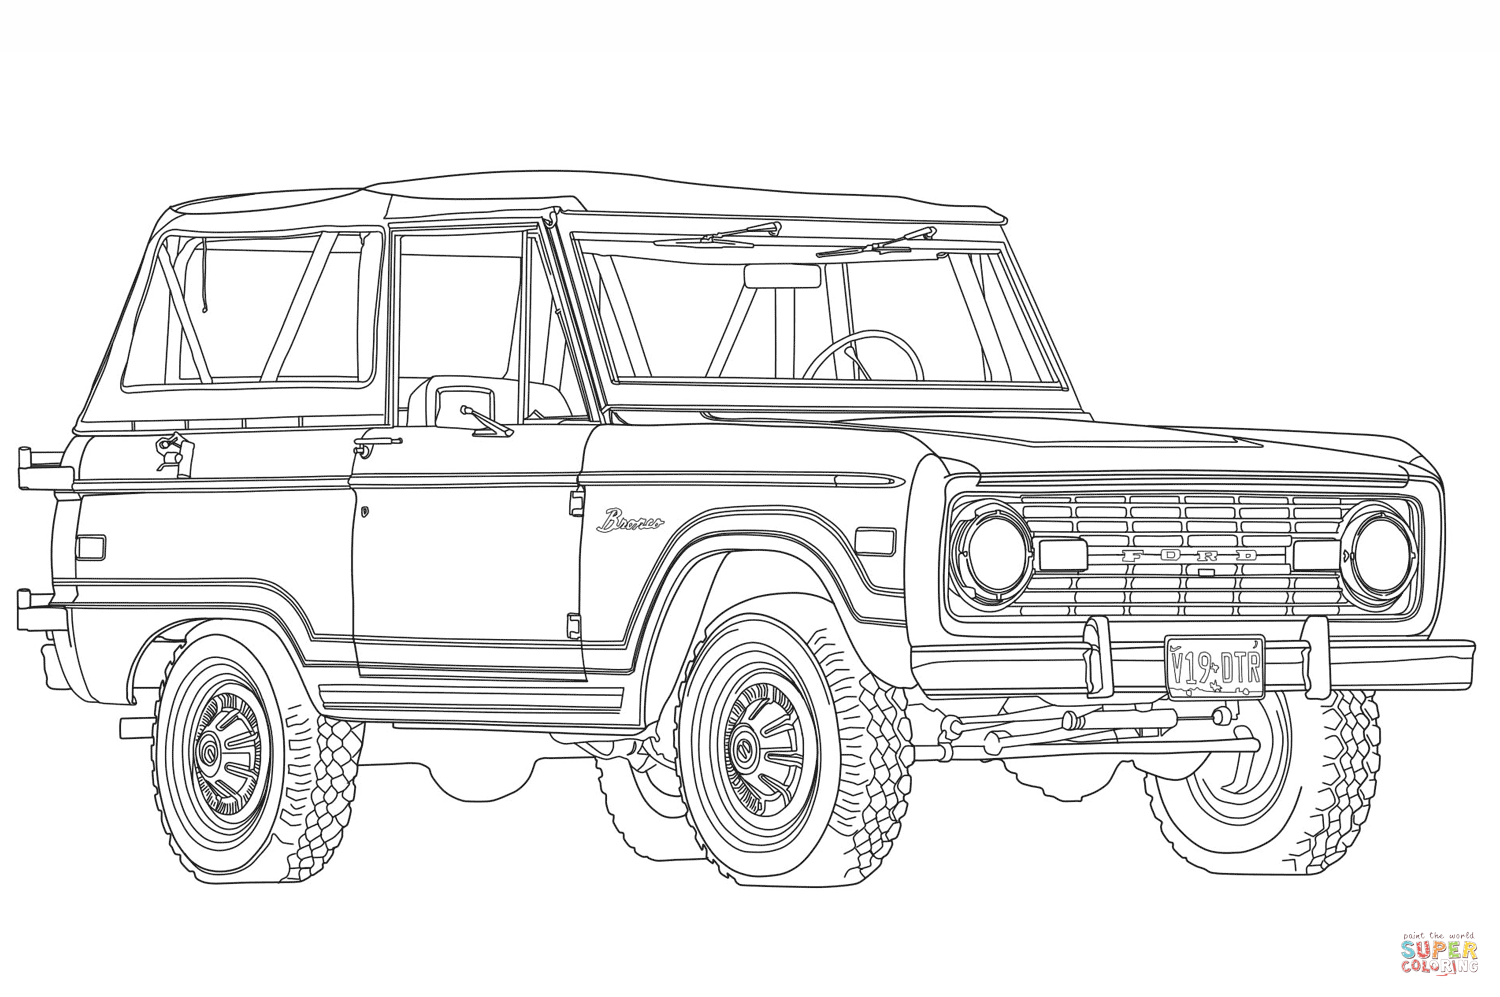 1966 Ford Bronco Super Coloring Ford Bronco Coloring Pages Bronco